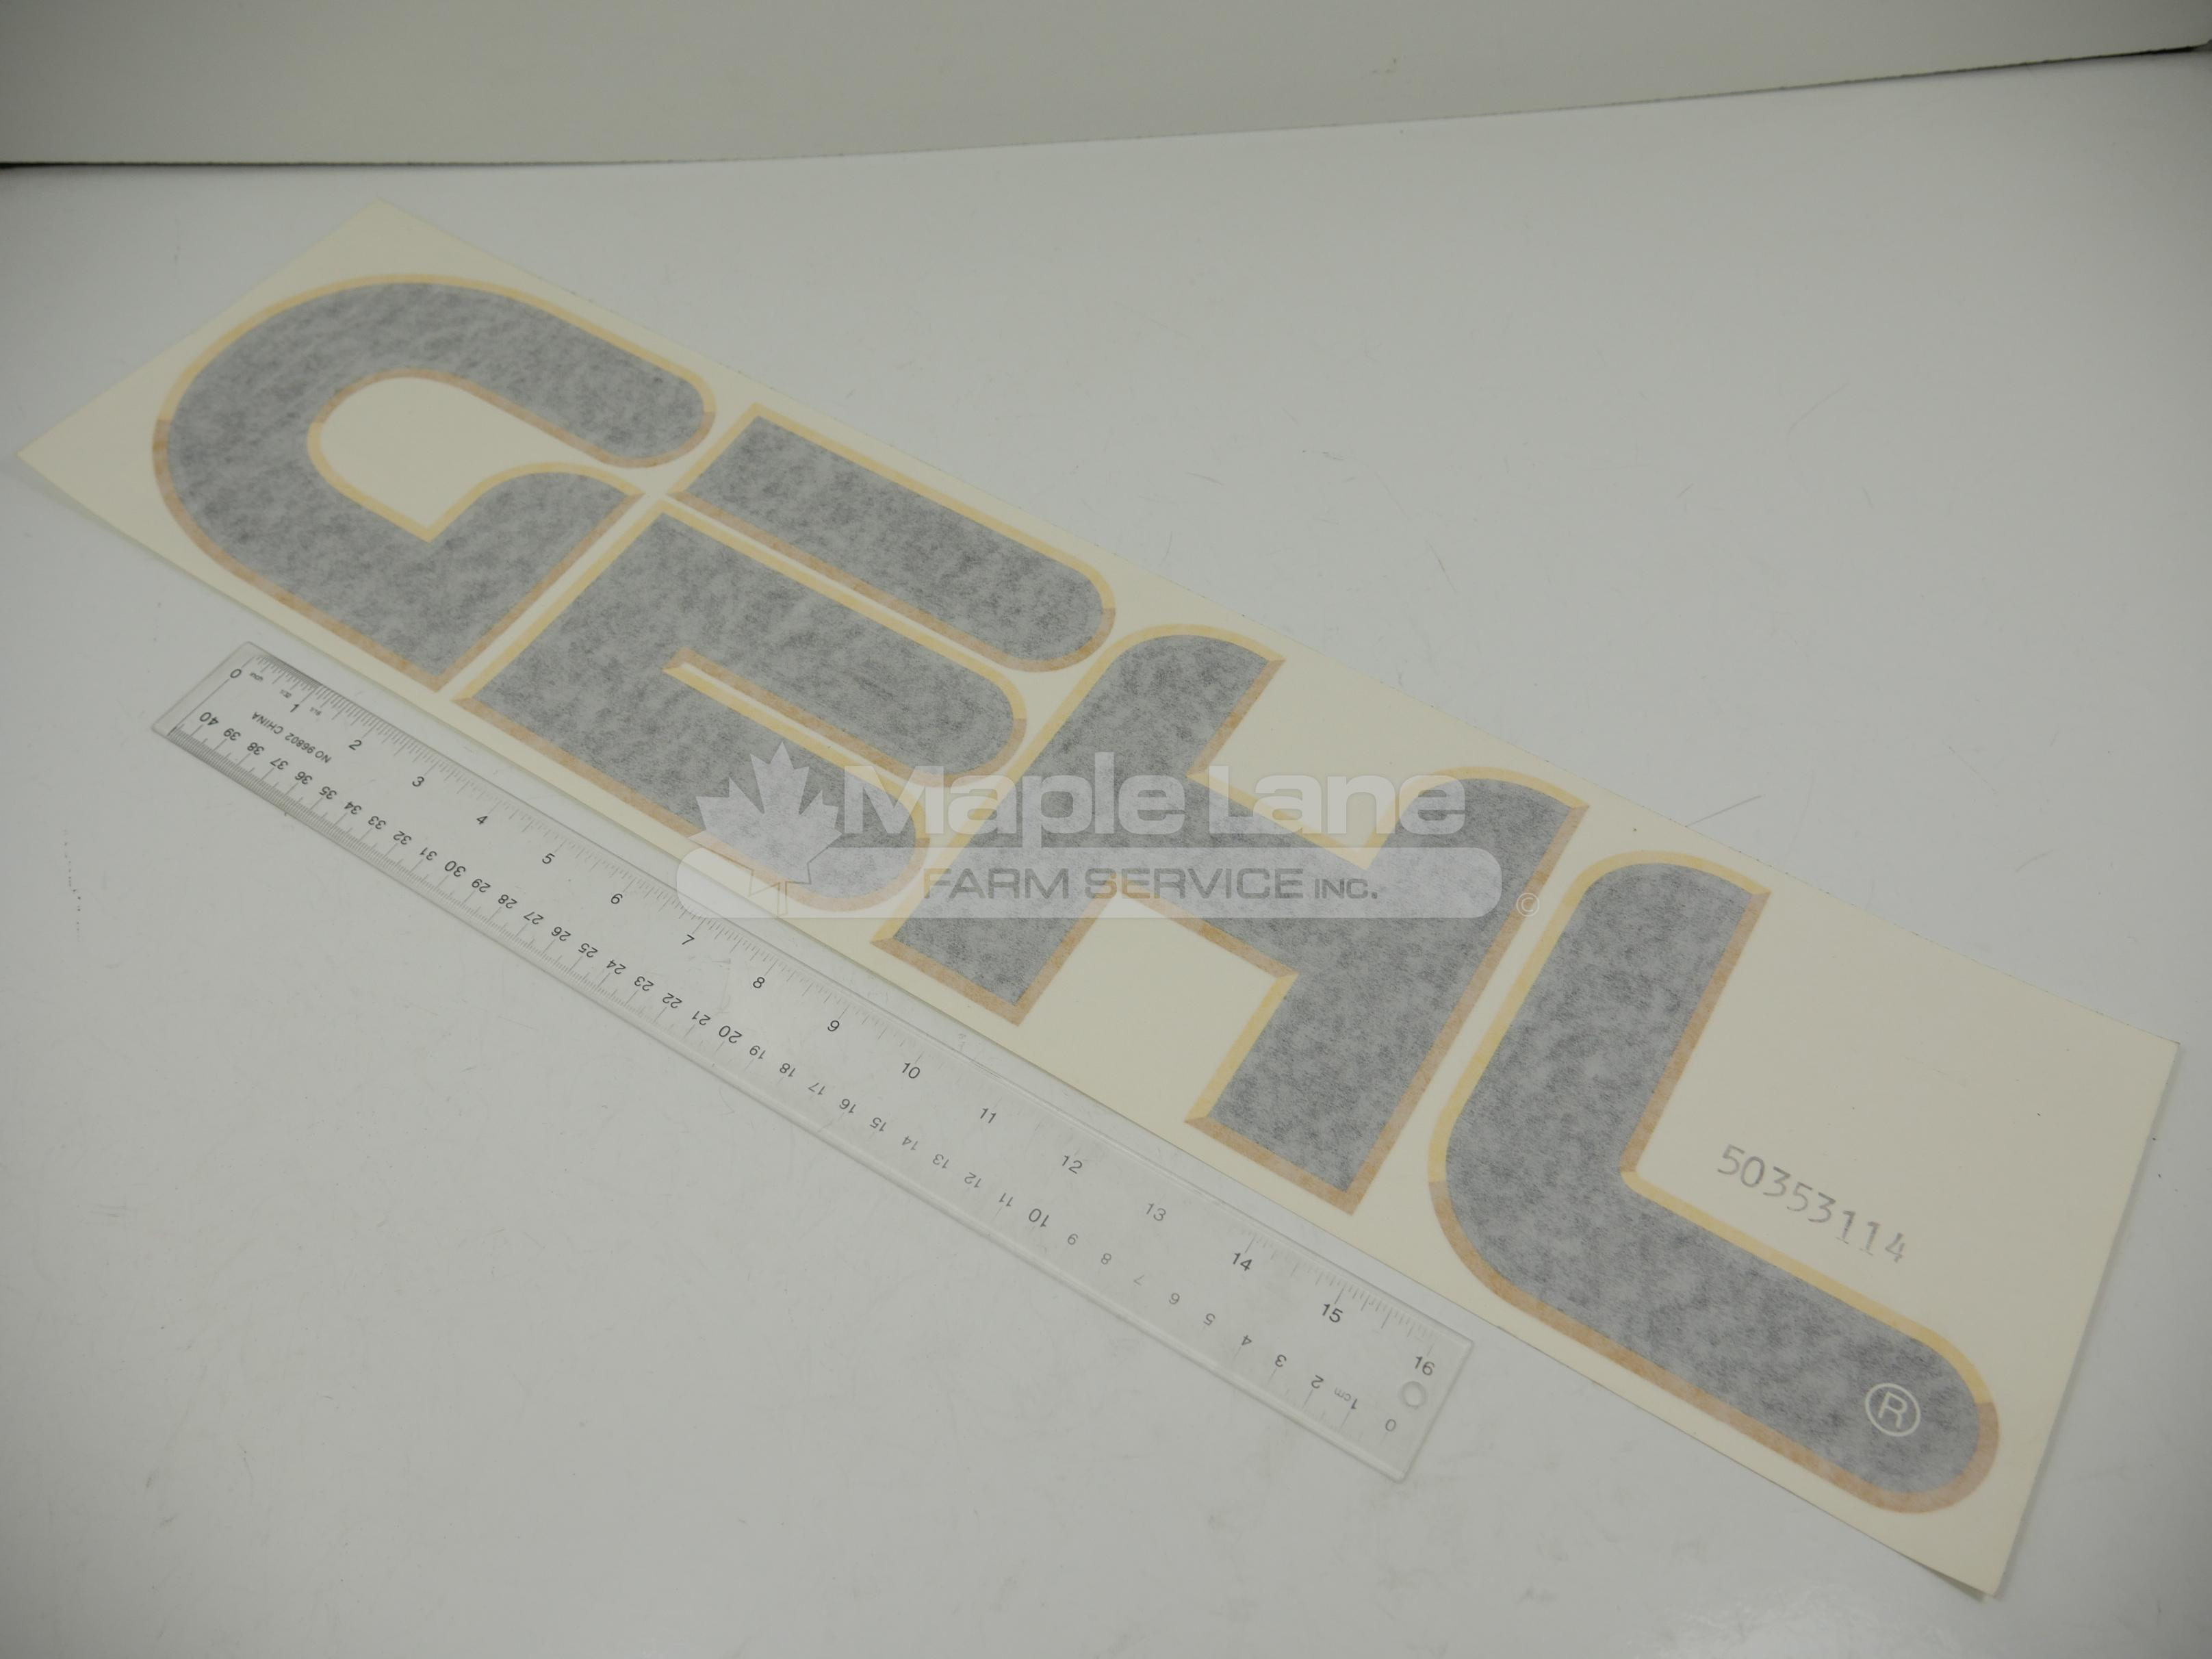 50353114 Lift Arm Decal